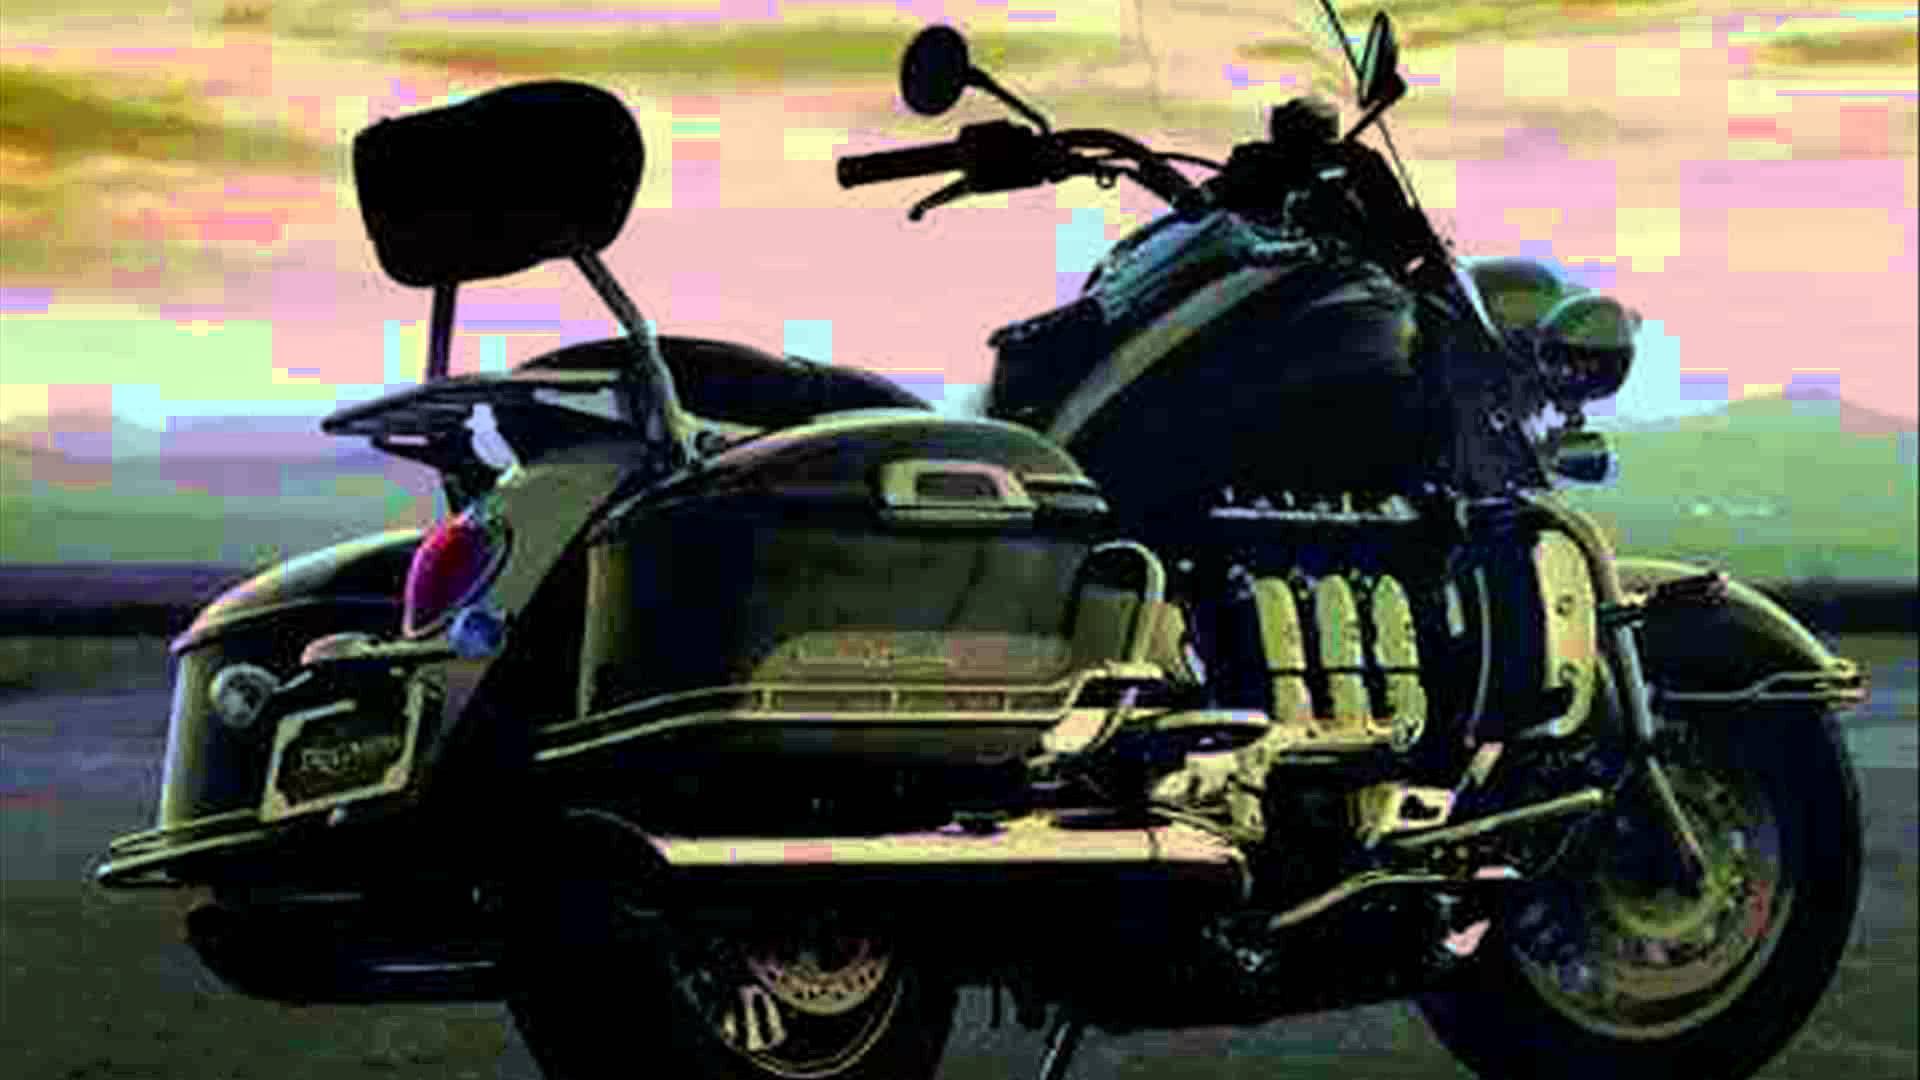 Triumph Rocket III Touring 2012 images #126943